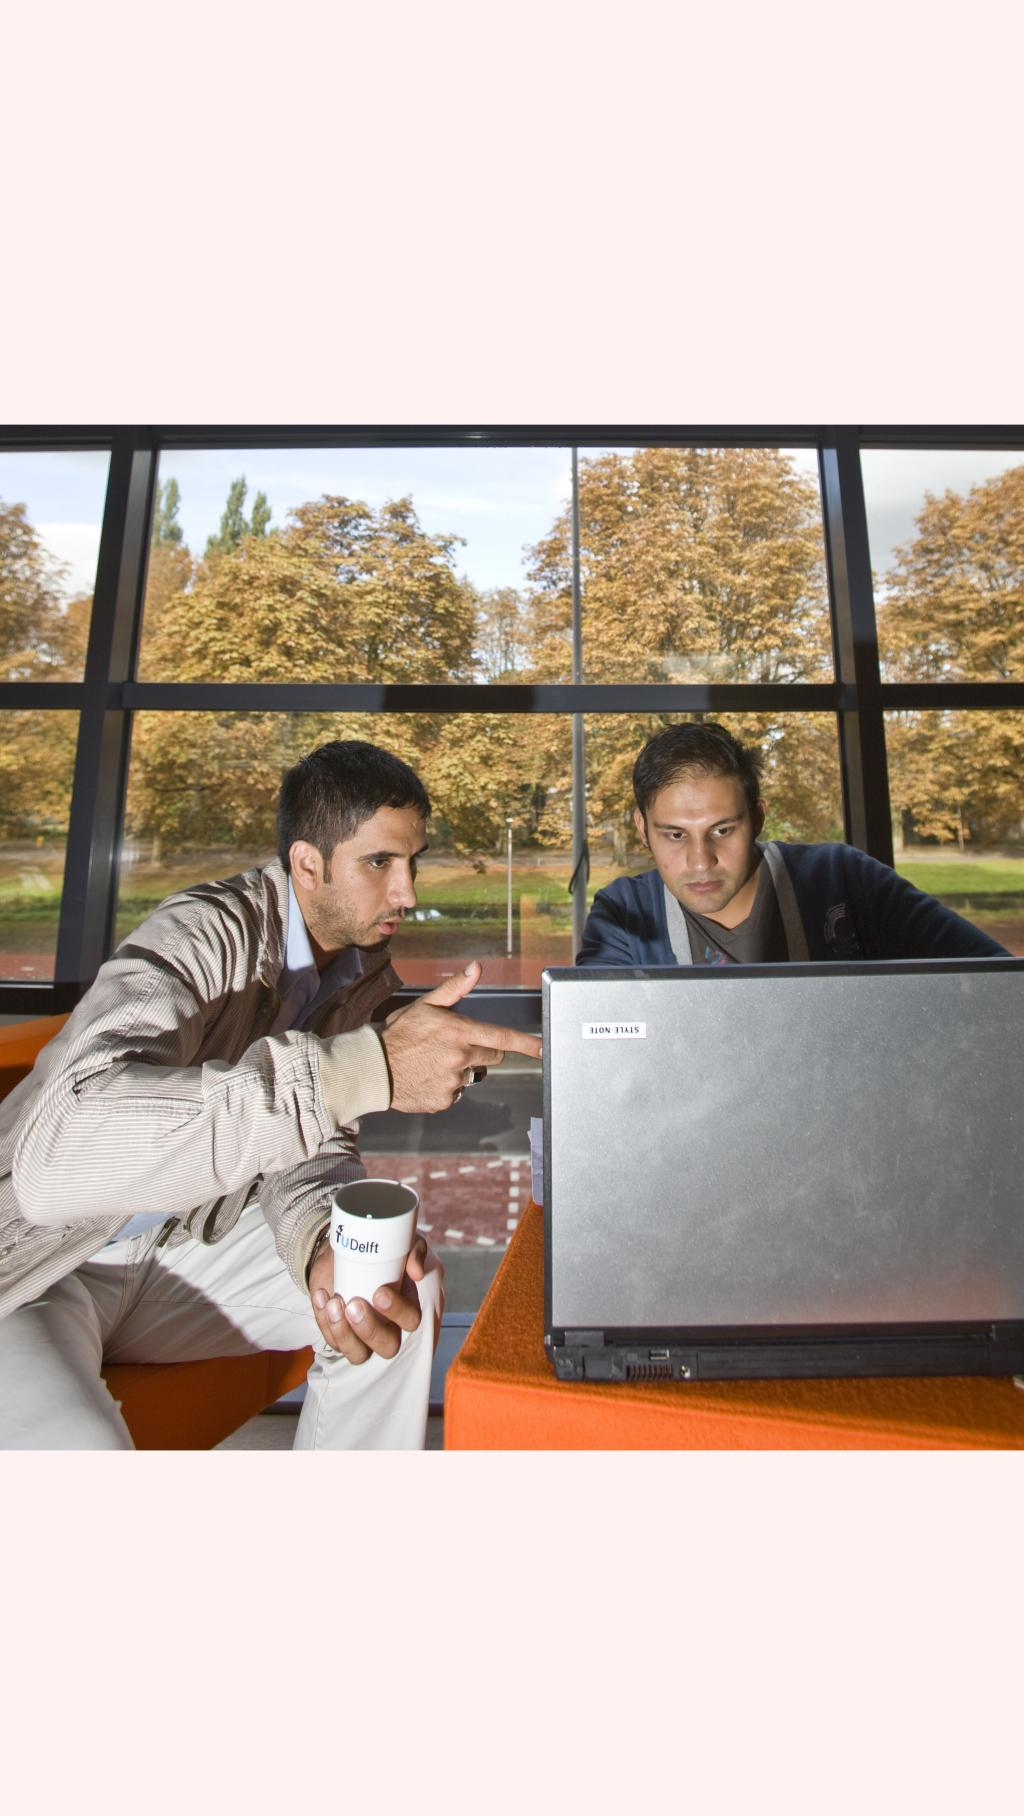 studenten met laptop